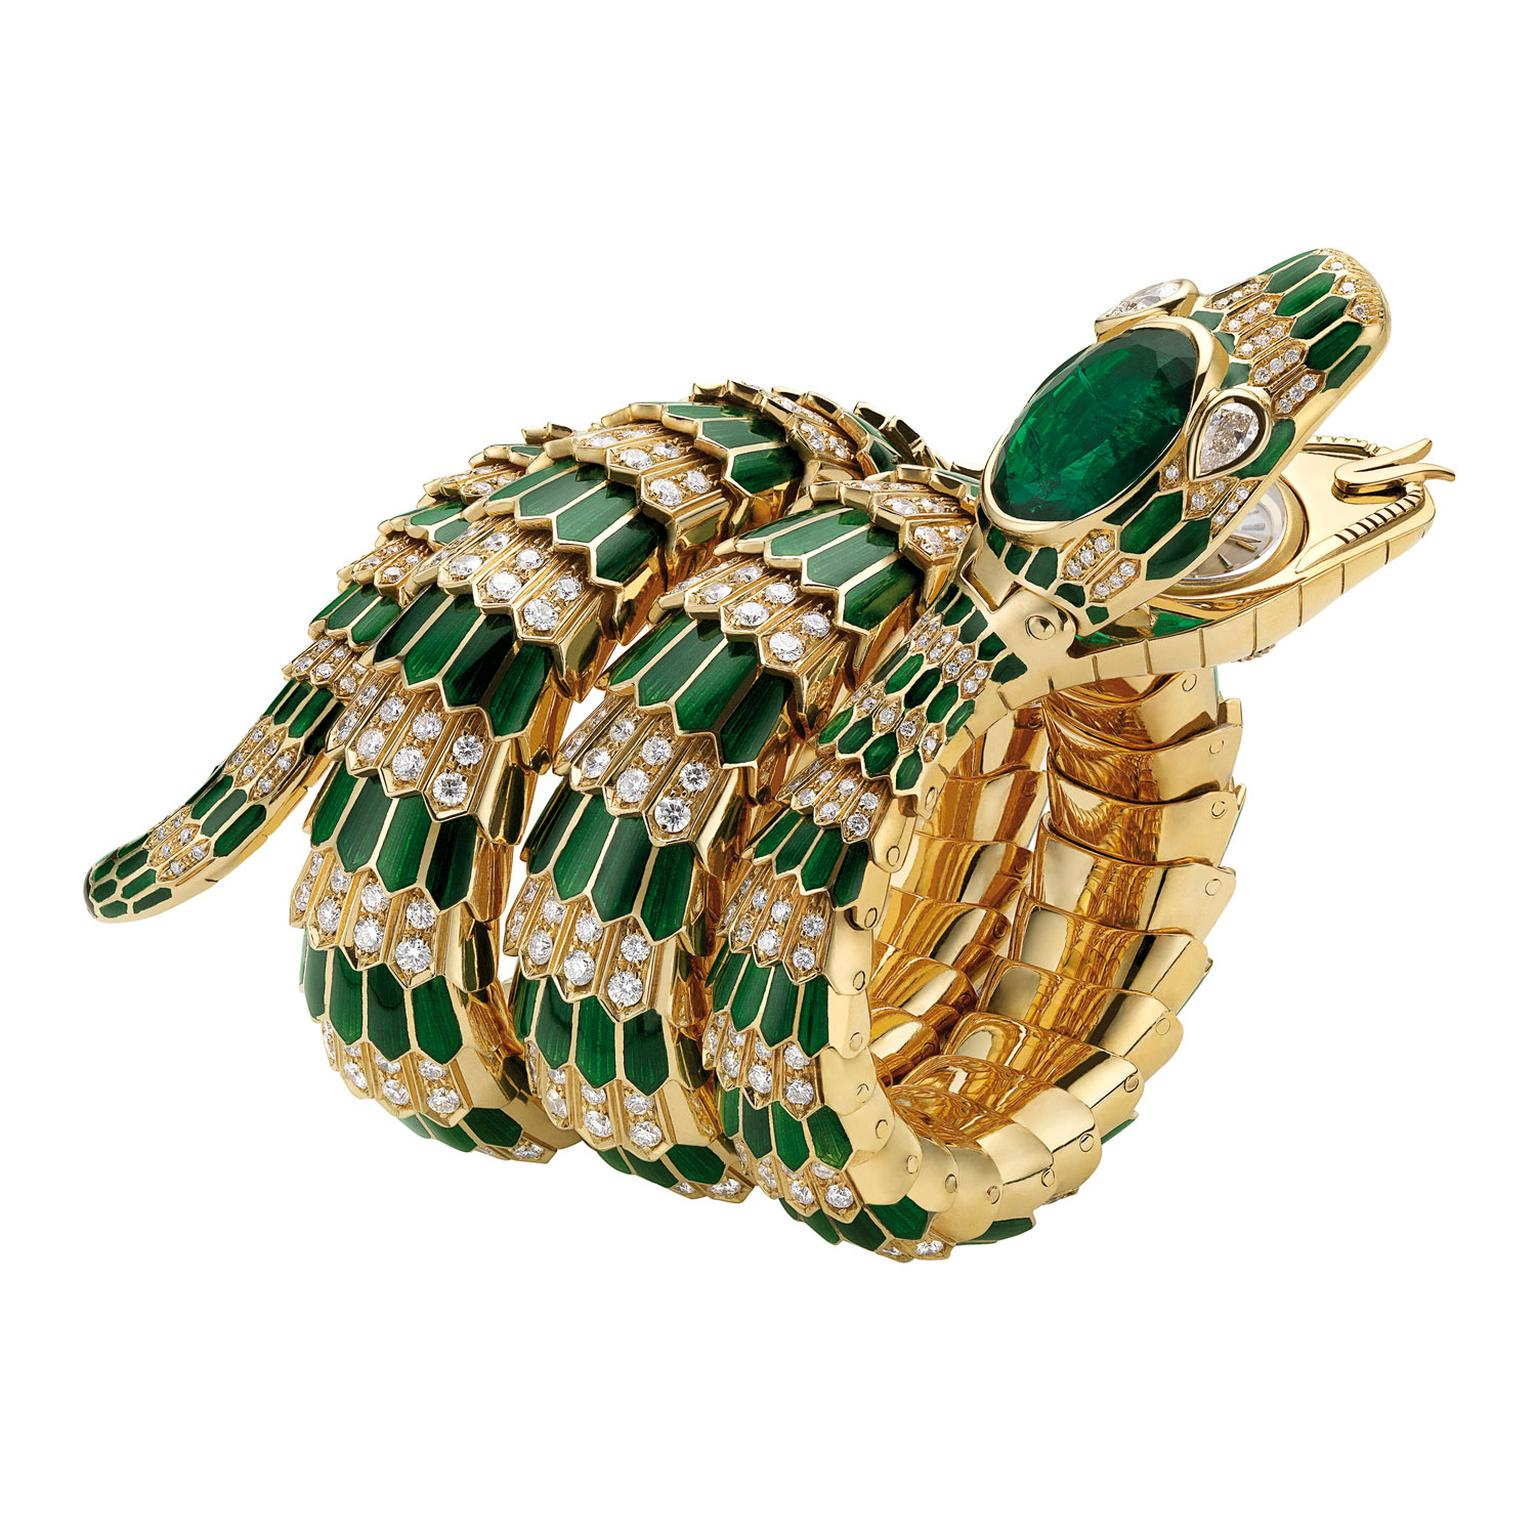 Bulgari Serpenti bracelet-watch from the Bulgari Heritage collection, 1969